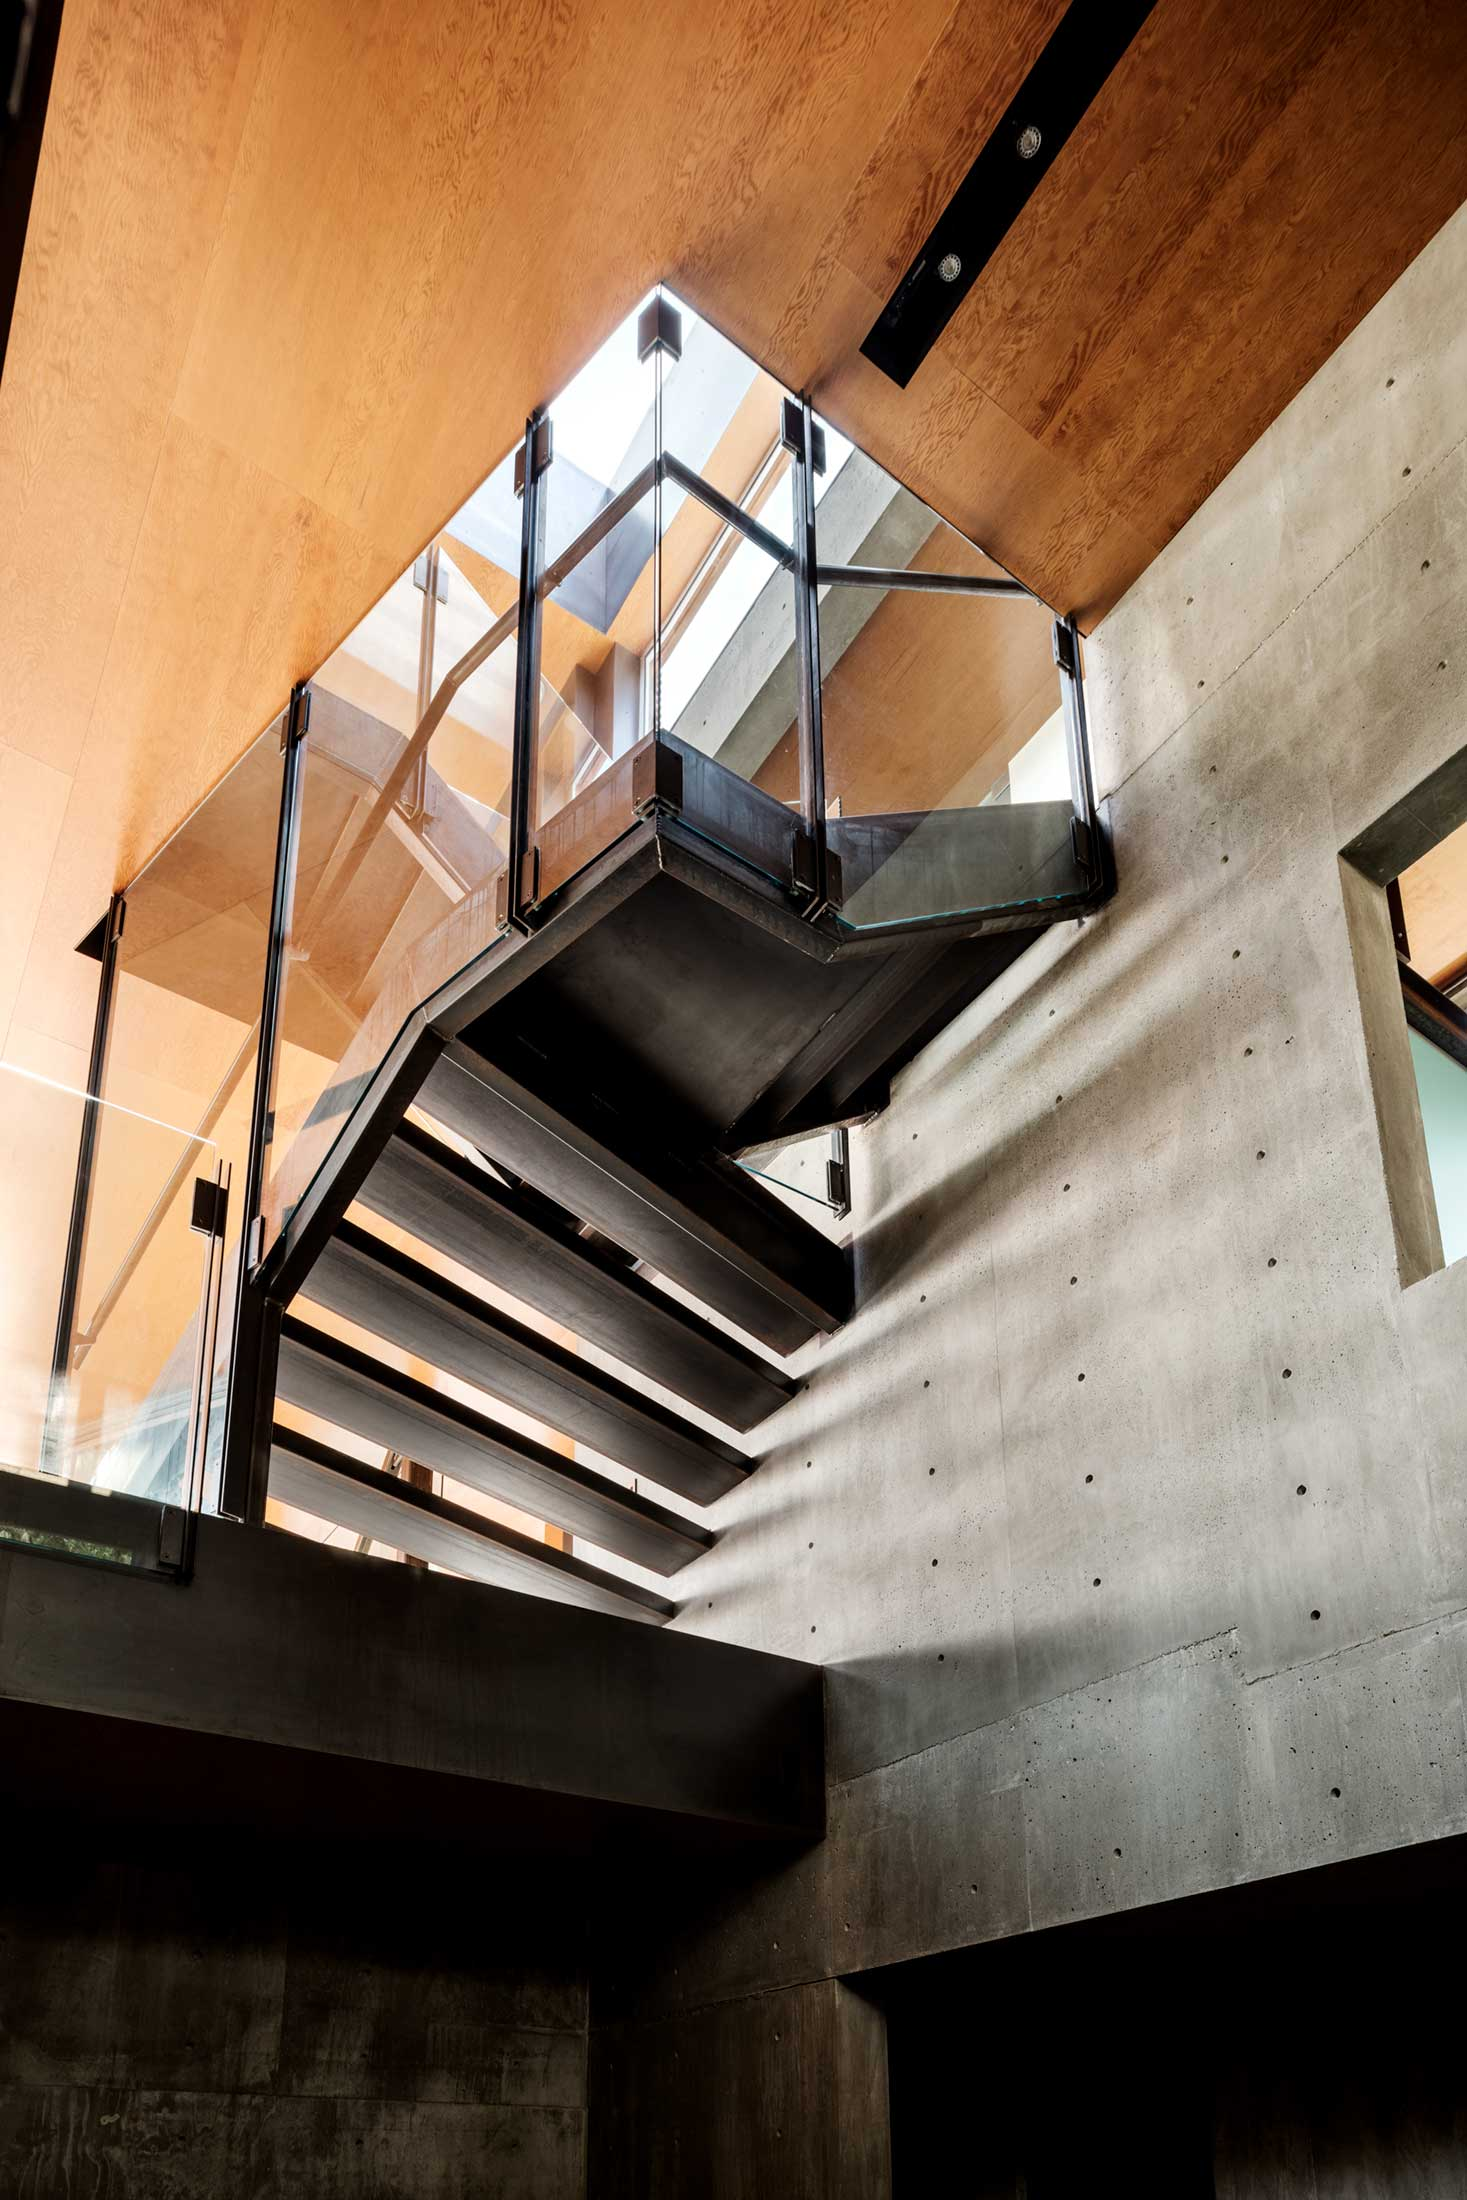 modern-architecture-residential-stairwell-concrete-california-shubindonaldson-skyline-3